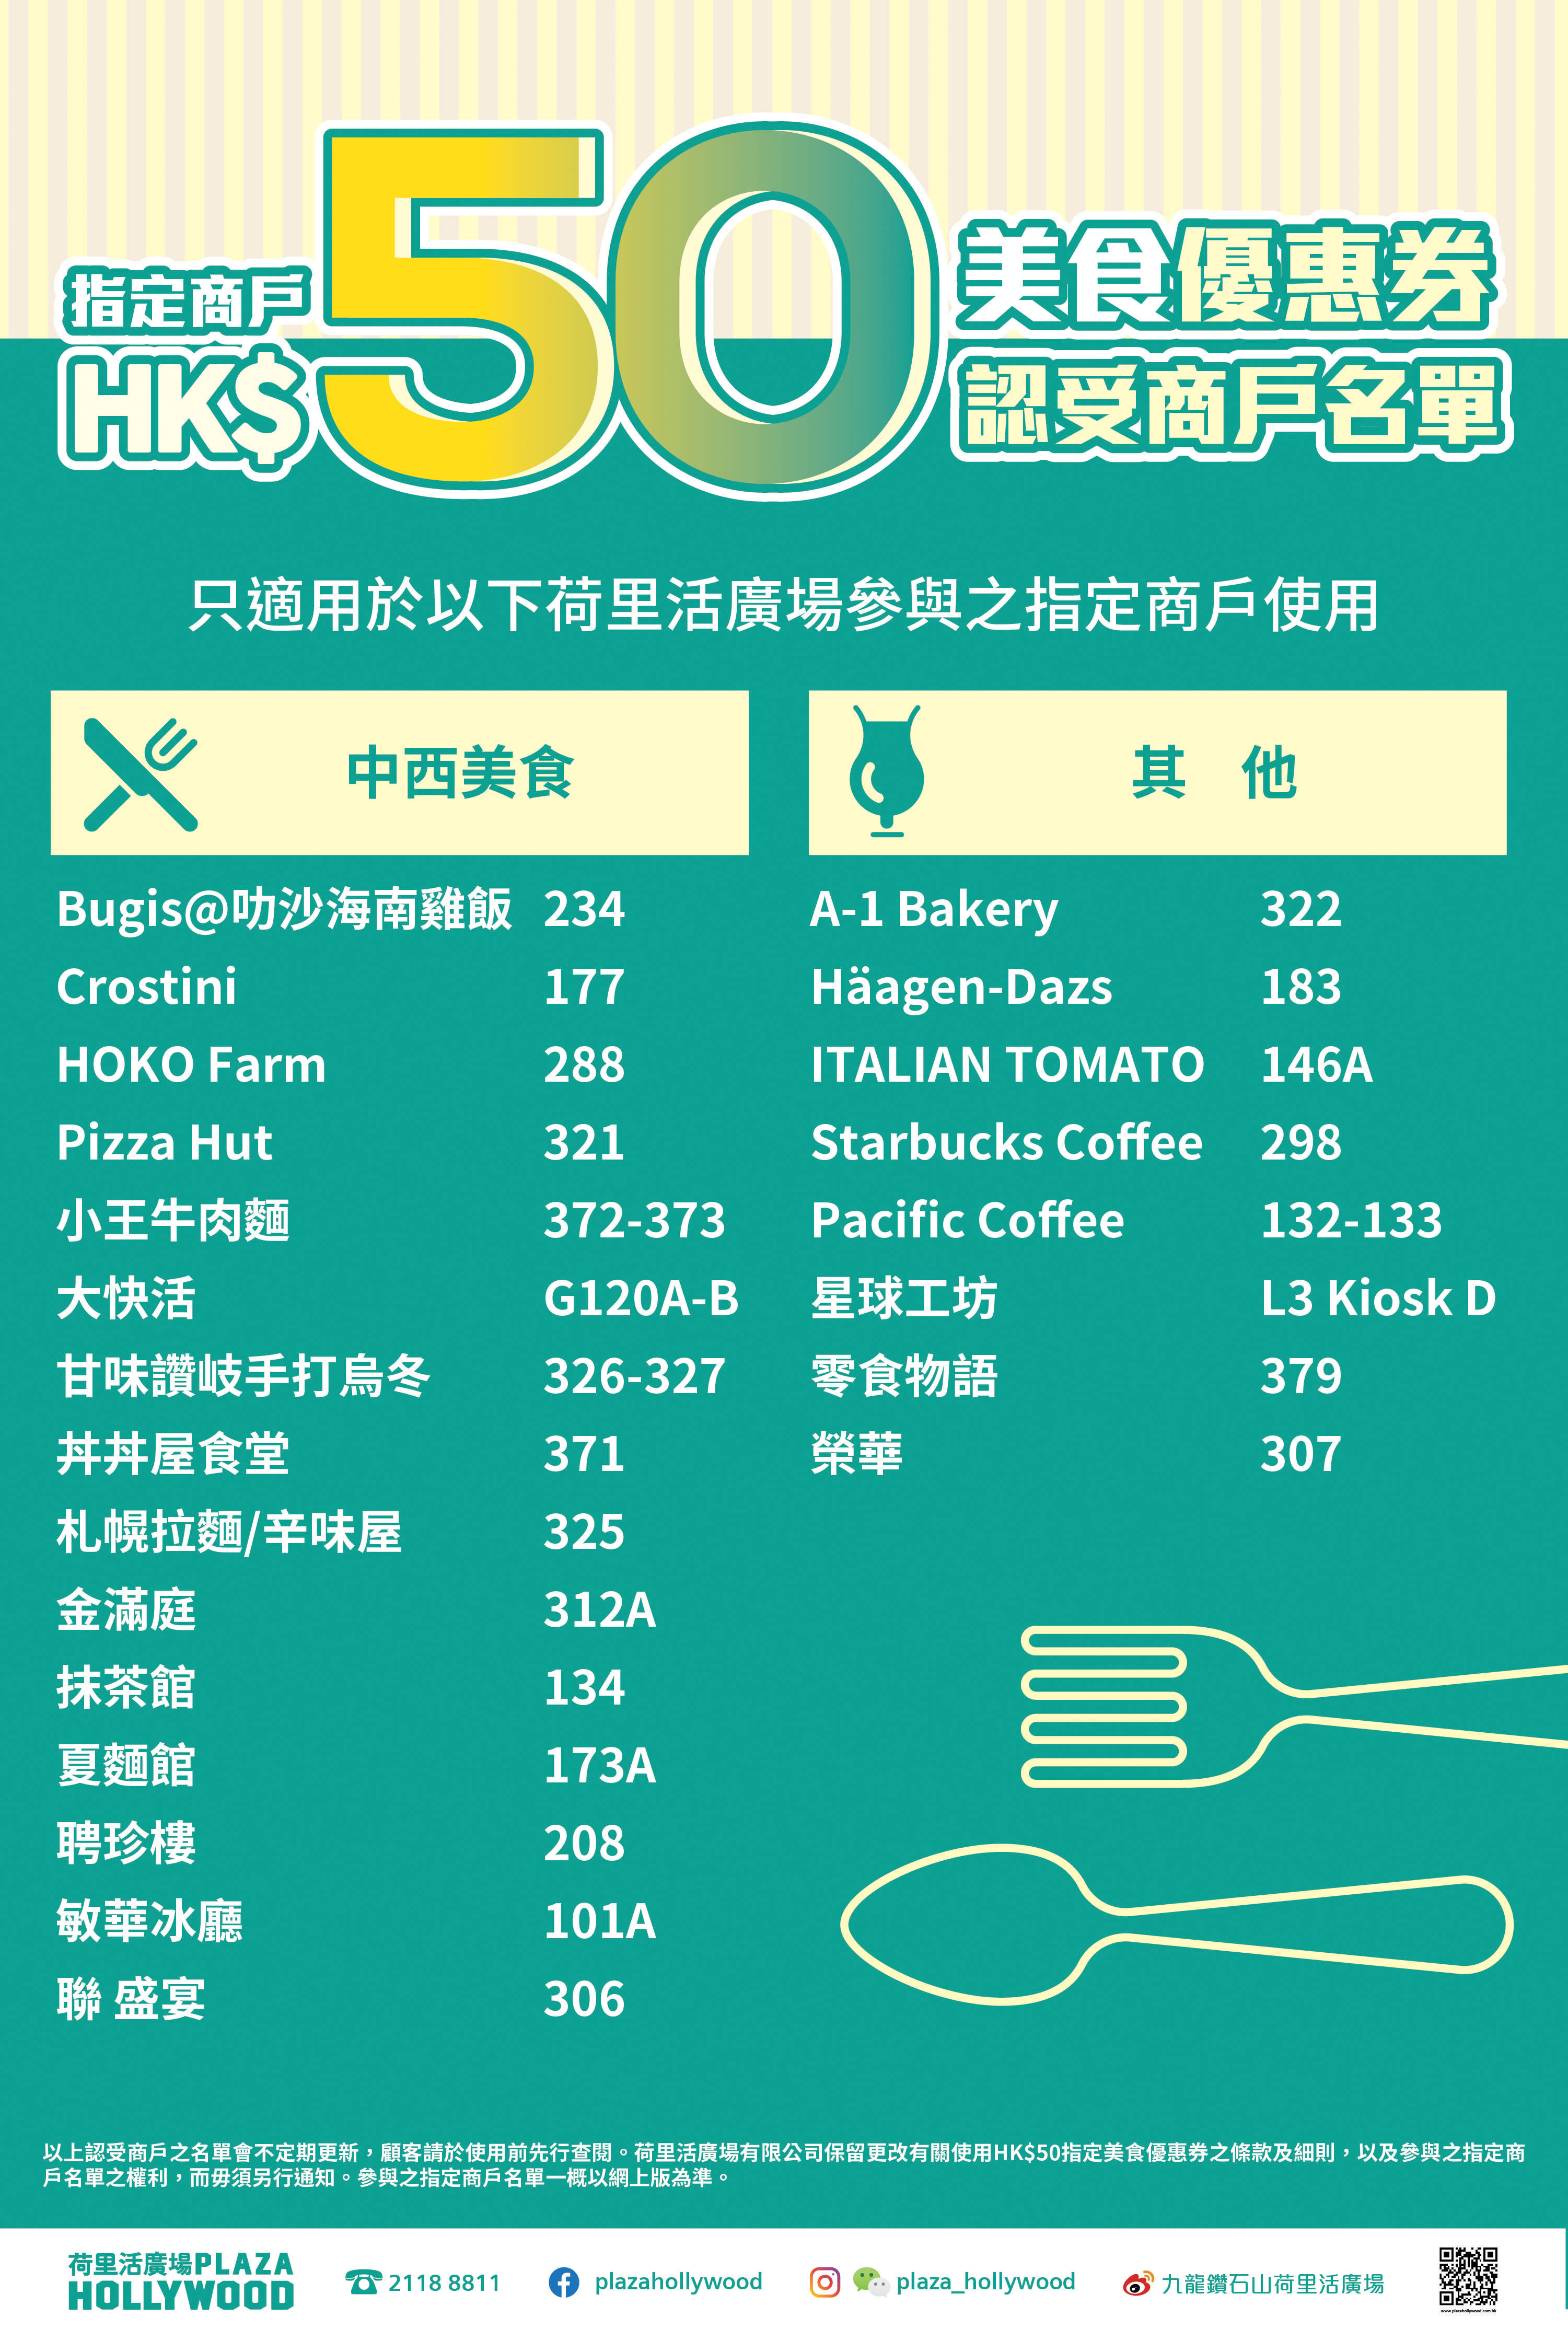 Plaza Hollywood HK$50 Dining Coupon - Participating Tenant List